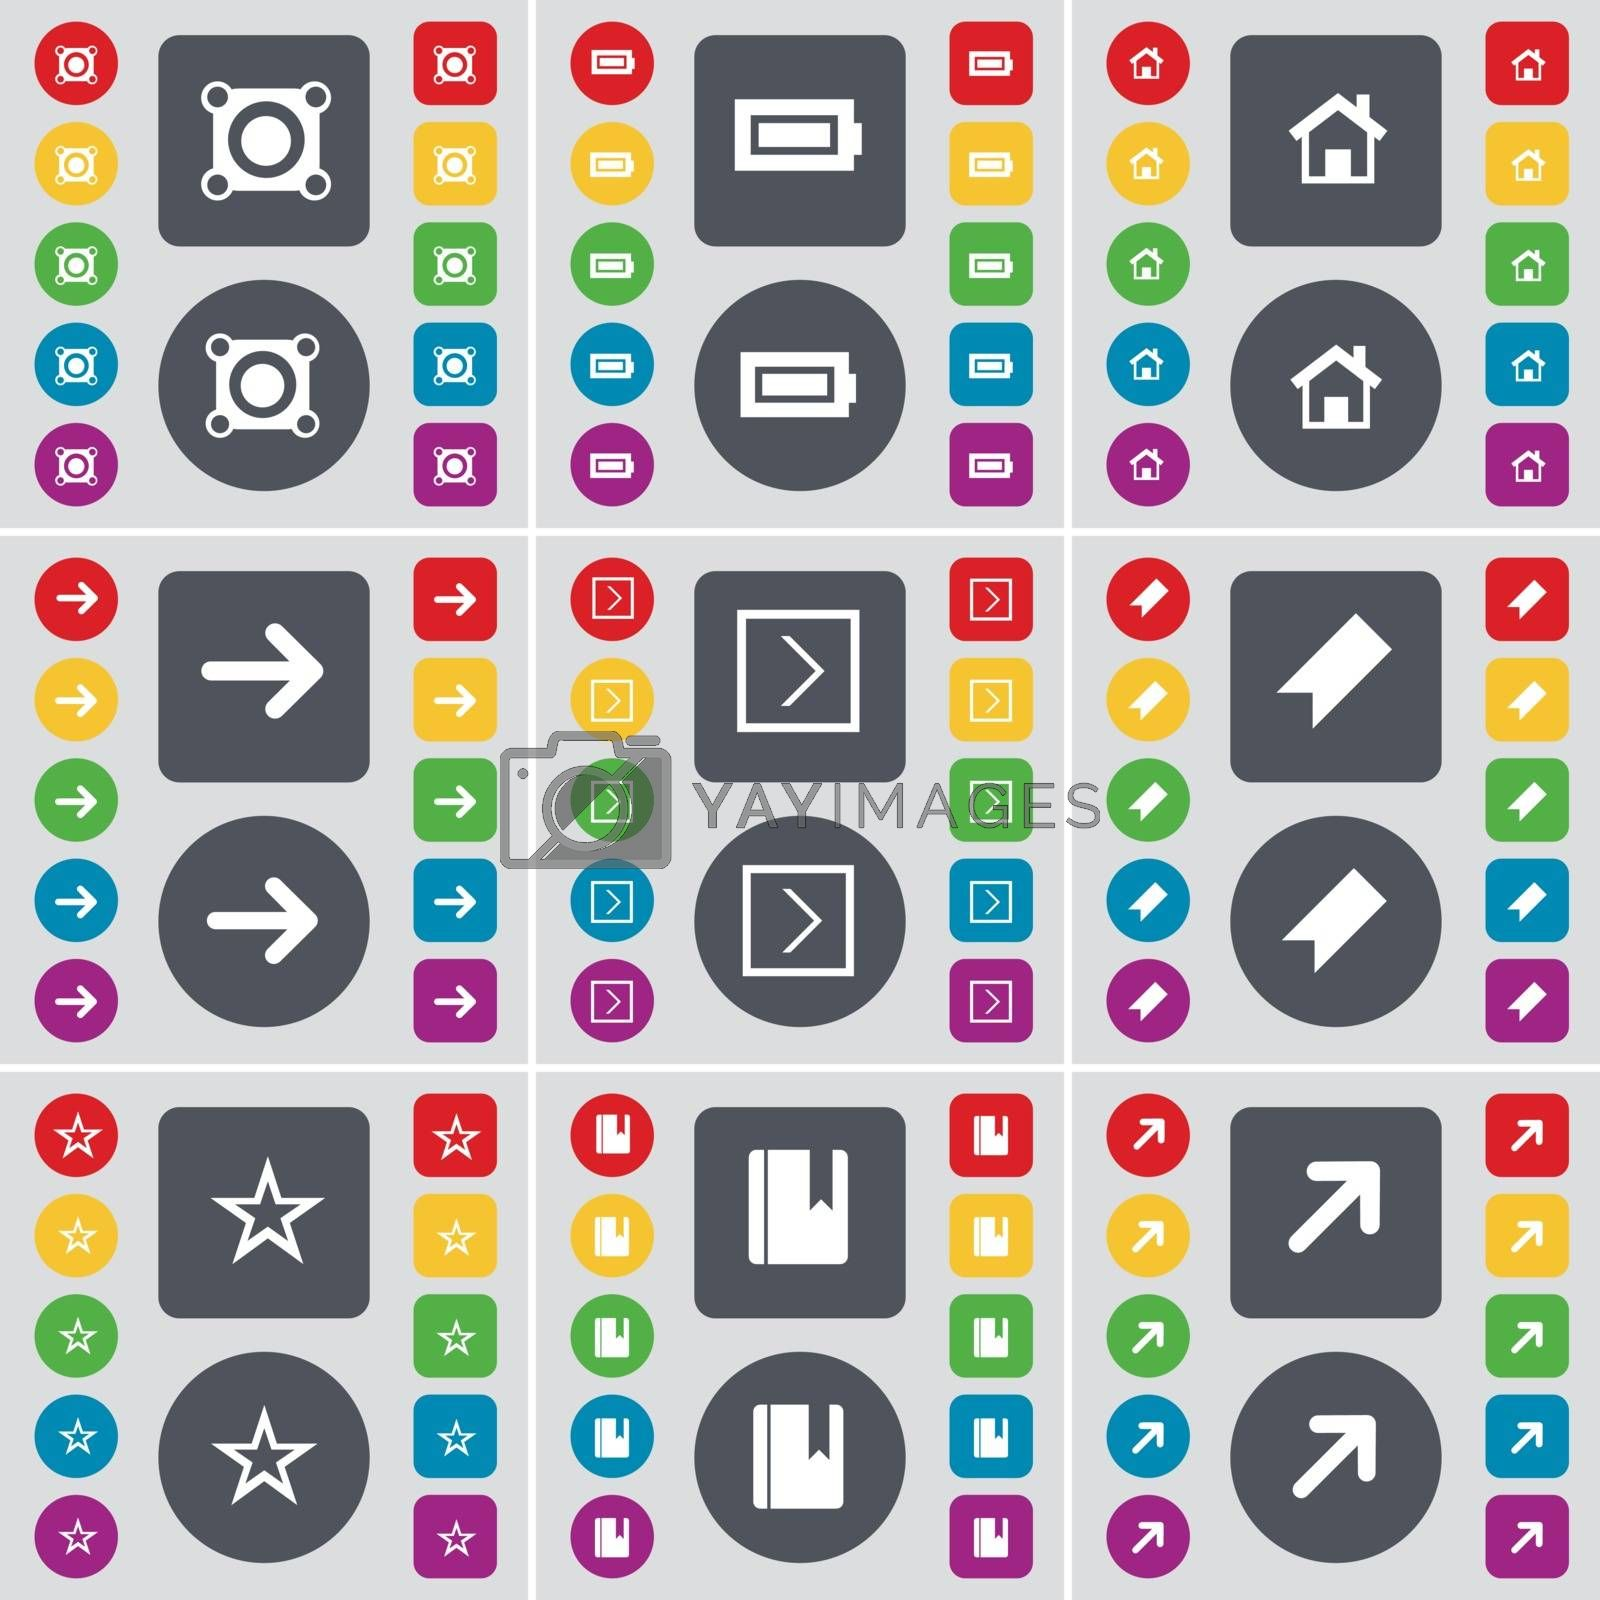 Royalty free image of Speaker, Battery, House, Arrow right, Marker, Star, Dictionary, Full screen icon symbol. A large set of flat, colored buttons for your design. Vector by serhii_lohvyniuk